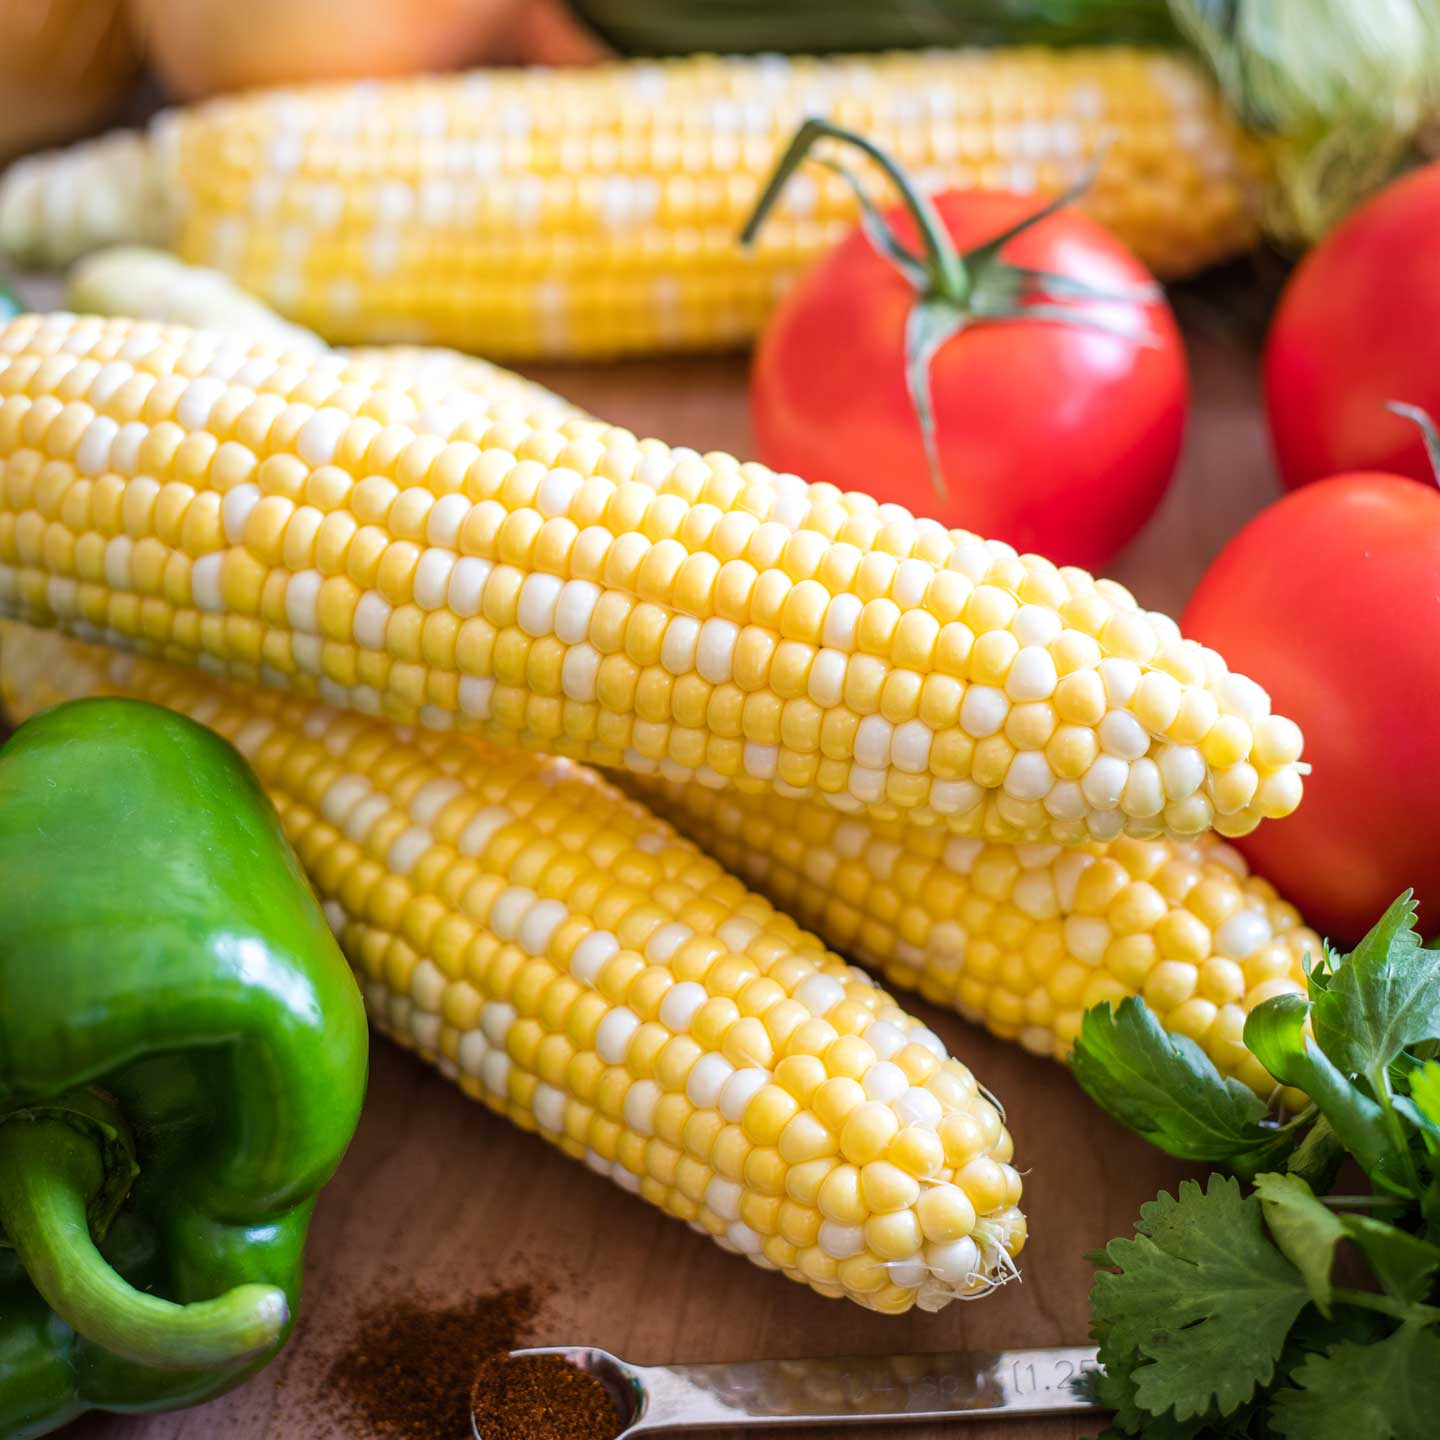 3 husked ears of bicolor corn, surrounded by other salad ingredients.